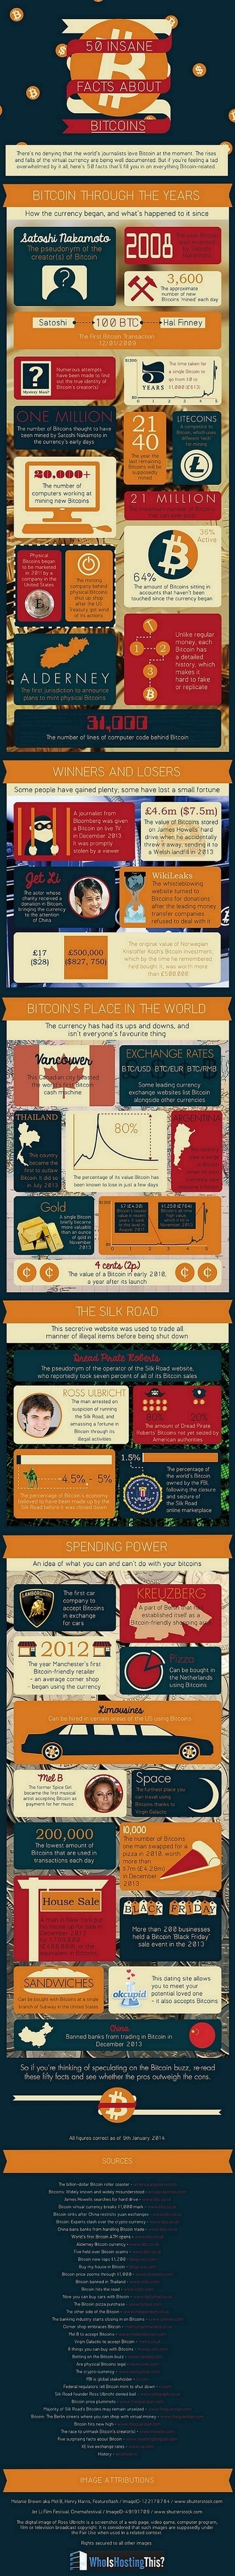 50 Insane Facts About Bitcoin (Infographic) - Business 2 Community | Orange rhymes with... | Scoop.it